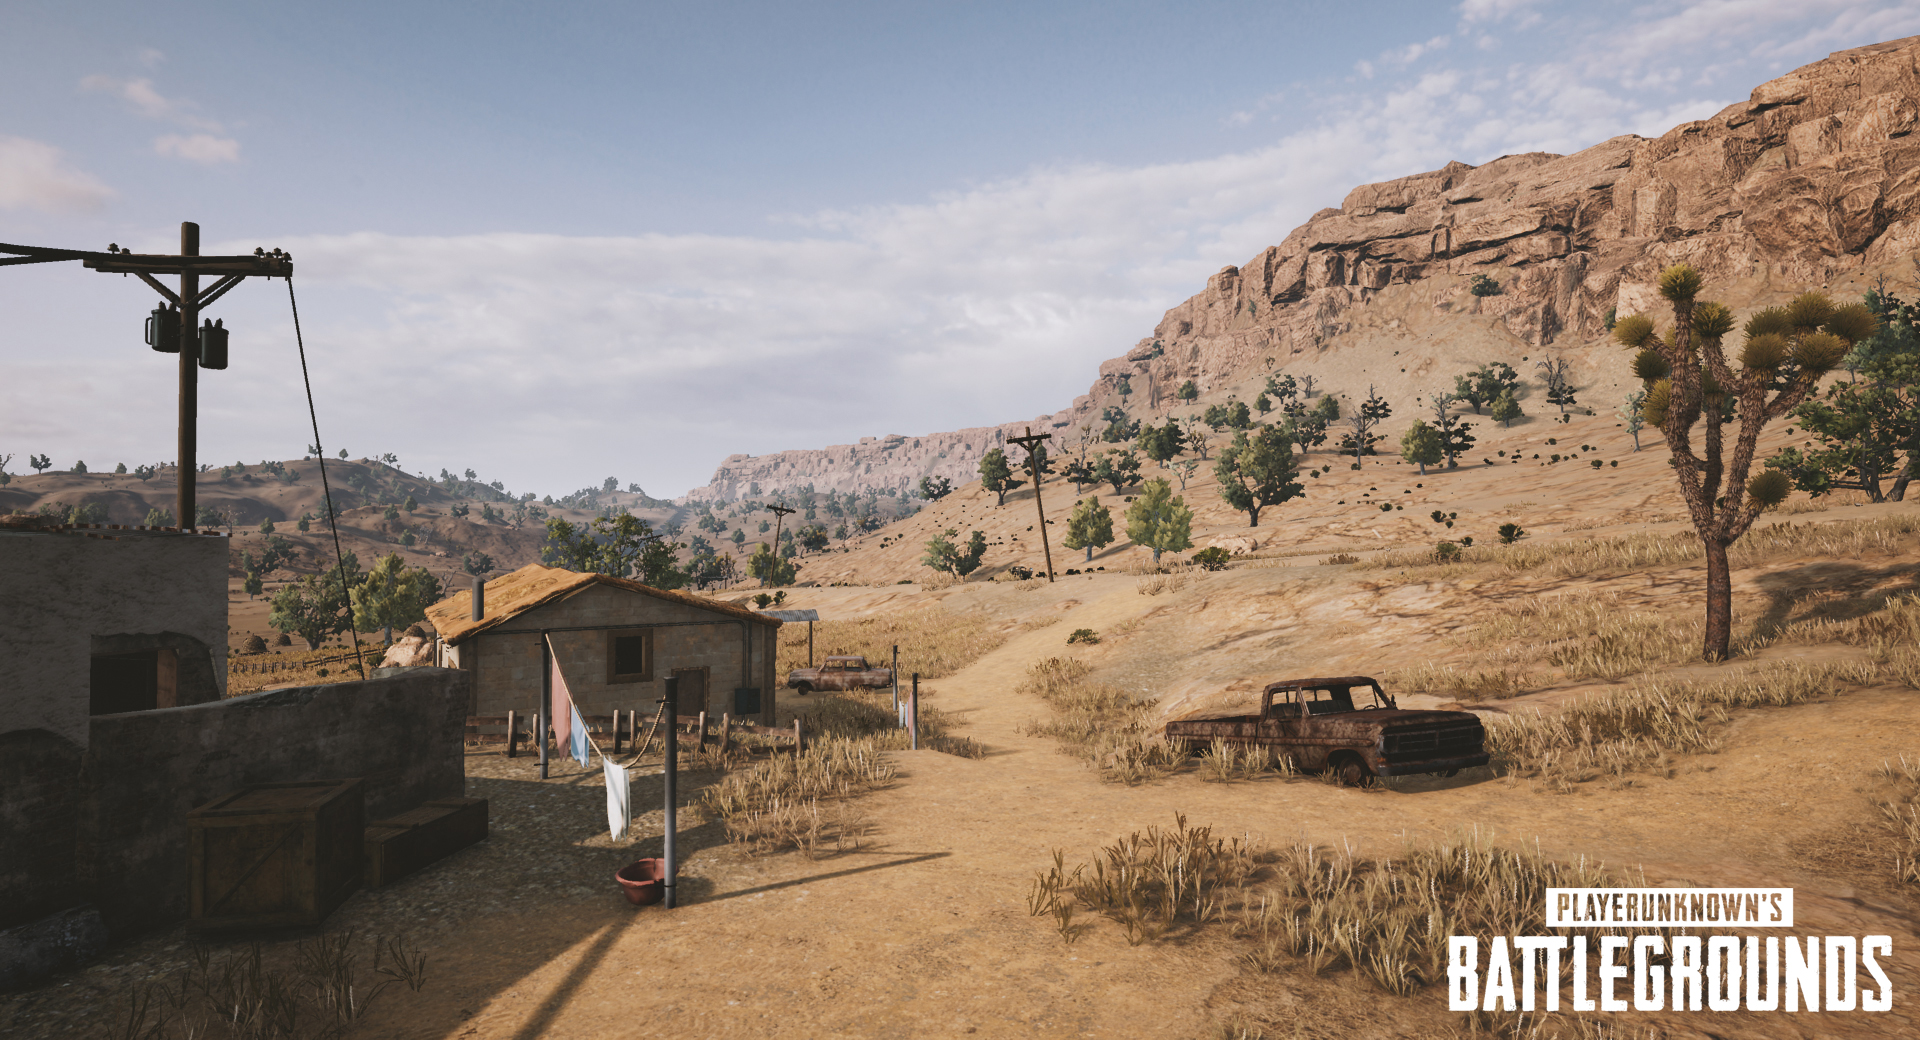 playerunknowns battlegrounds nvidia desert map screenshot 003 - First Five Screenshots Of PUBG's Desert Map